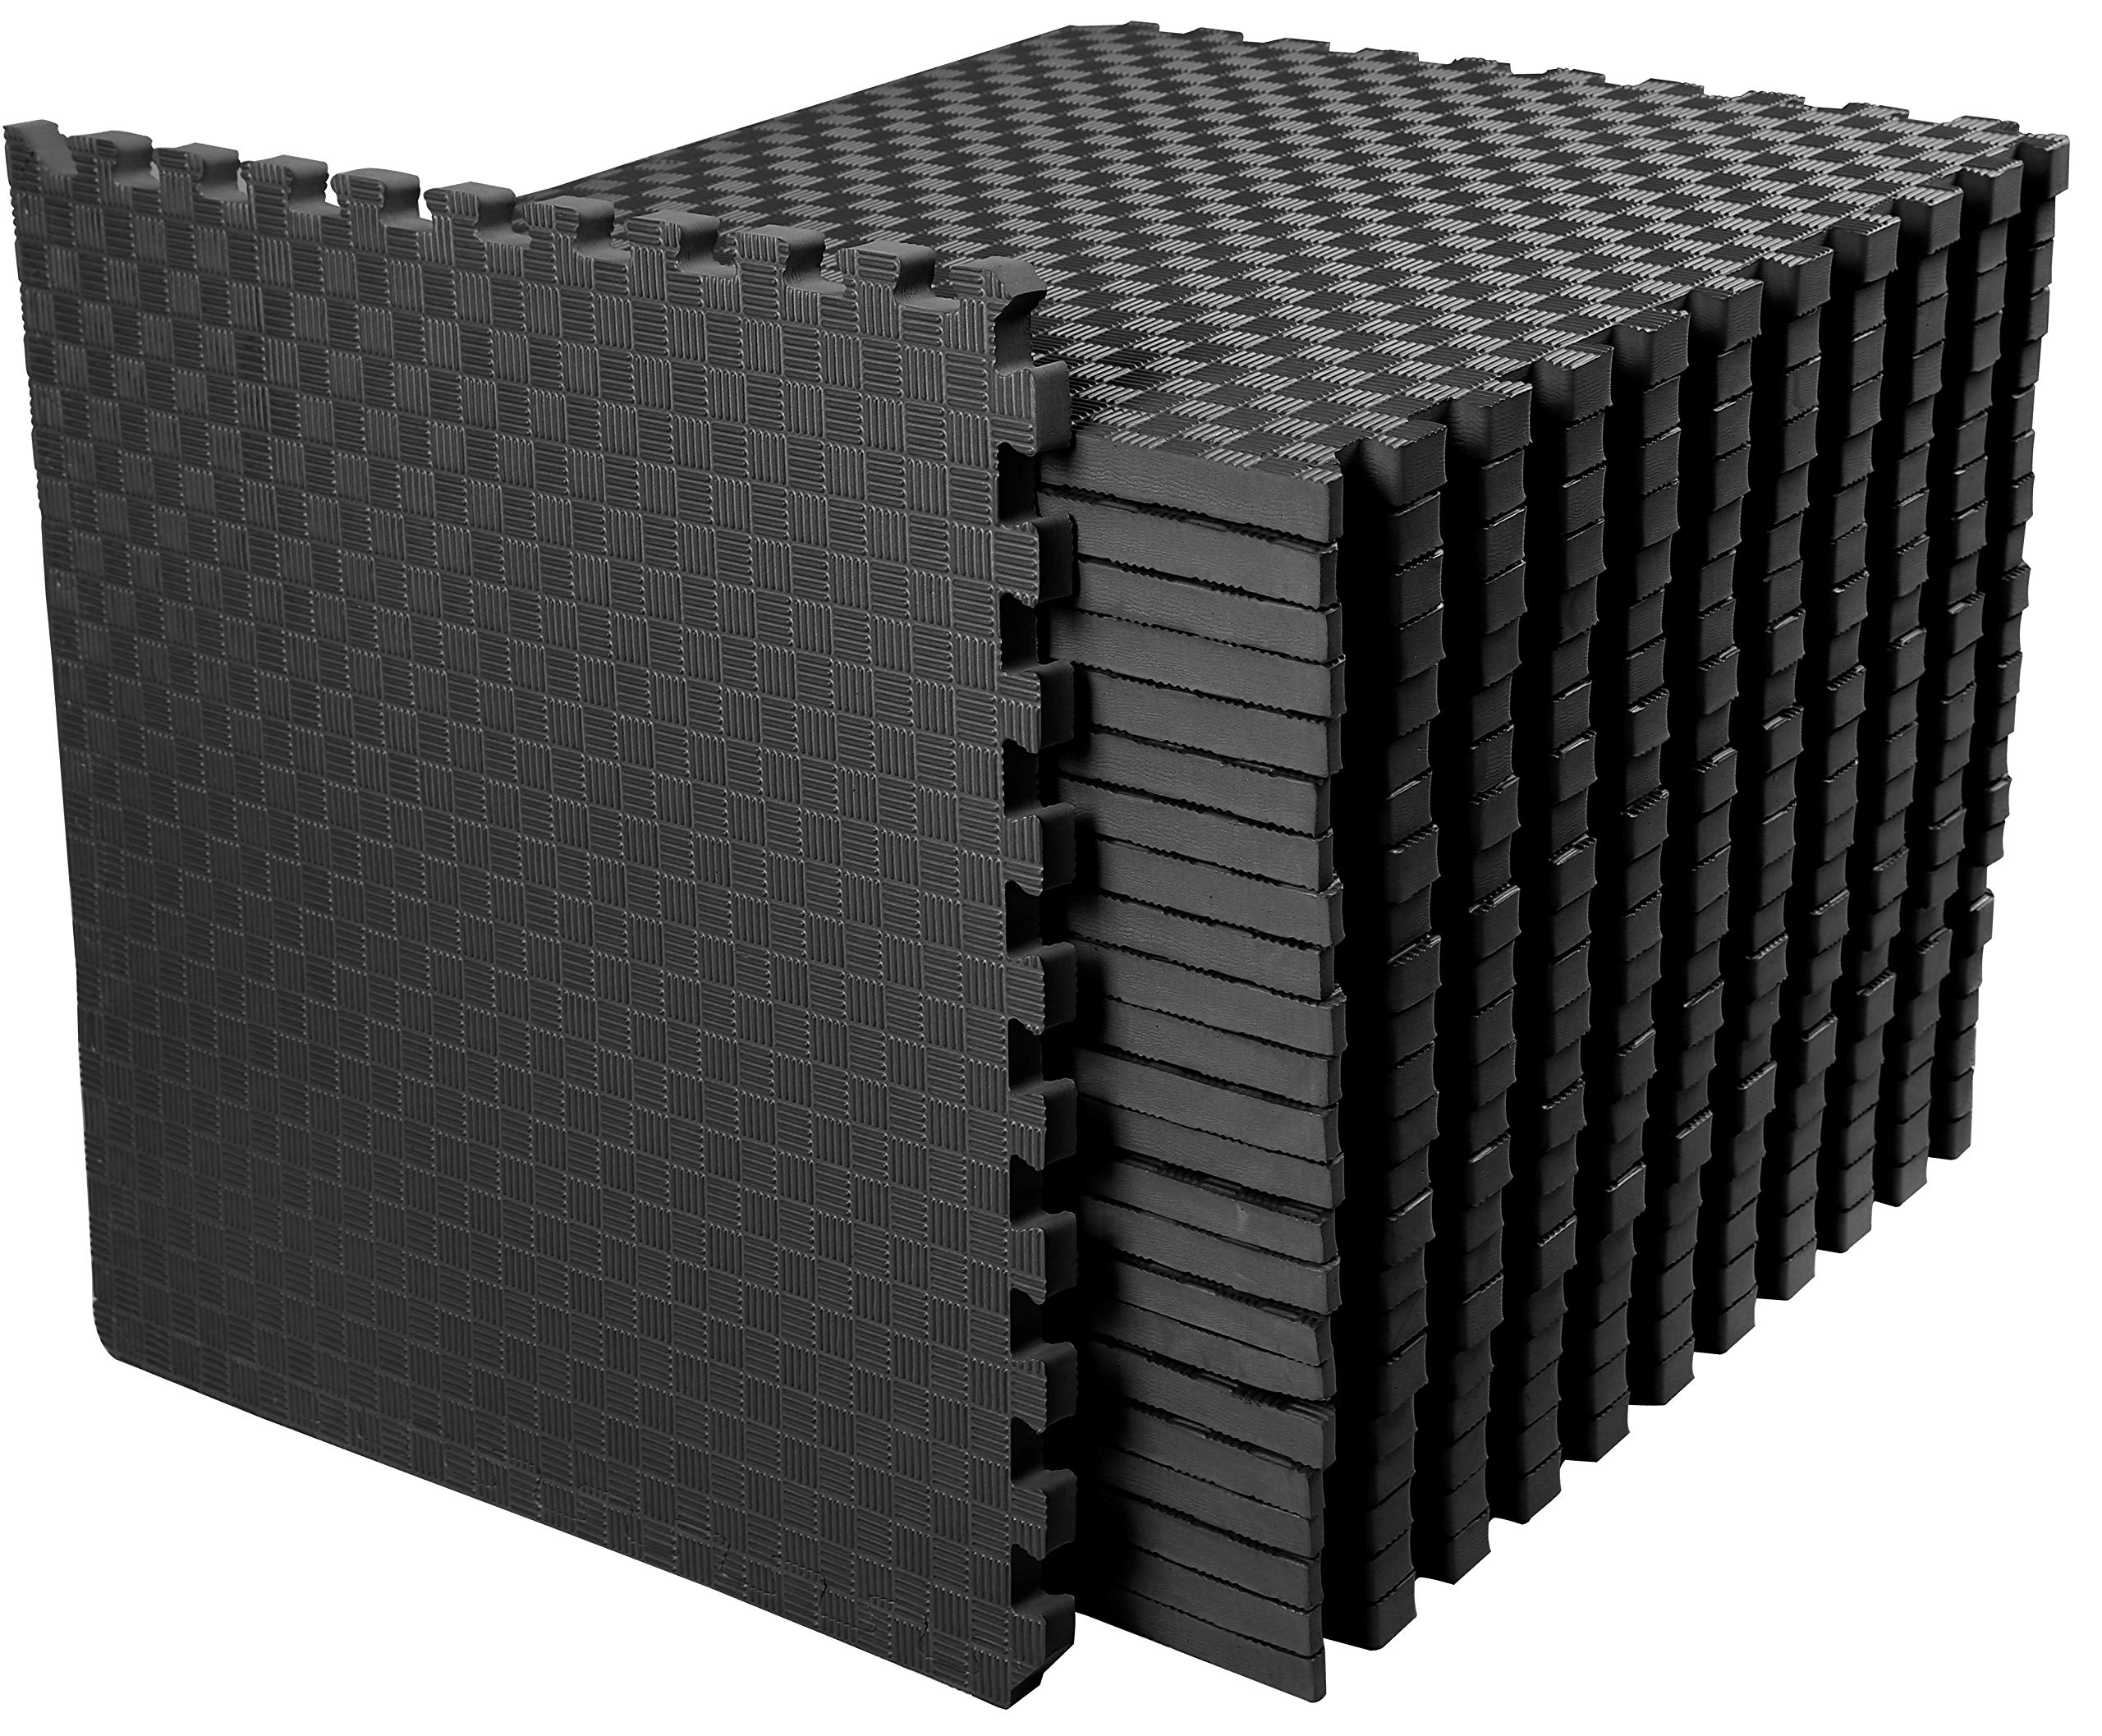 BalanceFrom 1'' Extra Thick Puzzle Exercise Mat with EVA Foam Interlocking Tiles for MMA, Exercise, Gymnastics and Home Gym Protective Flooring, 72 Square Feet (Black)